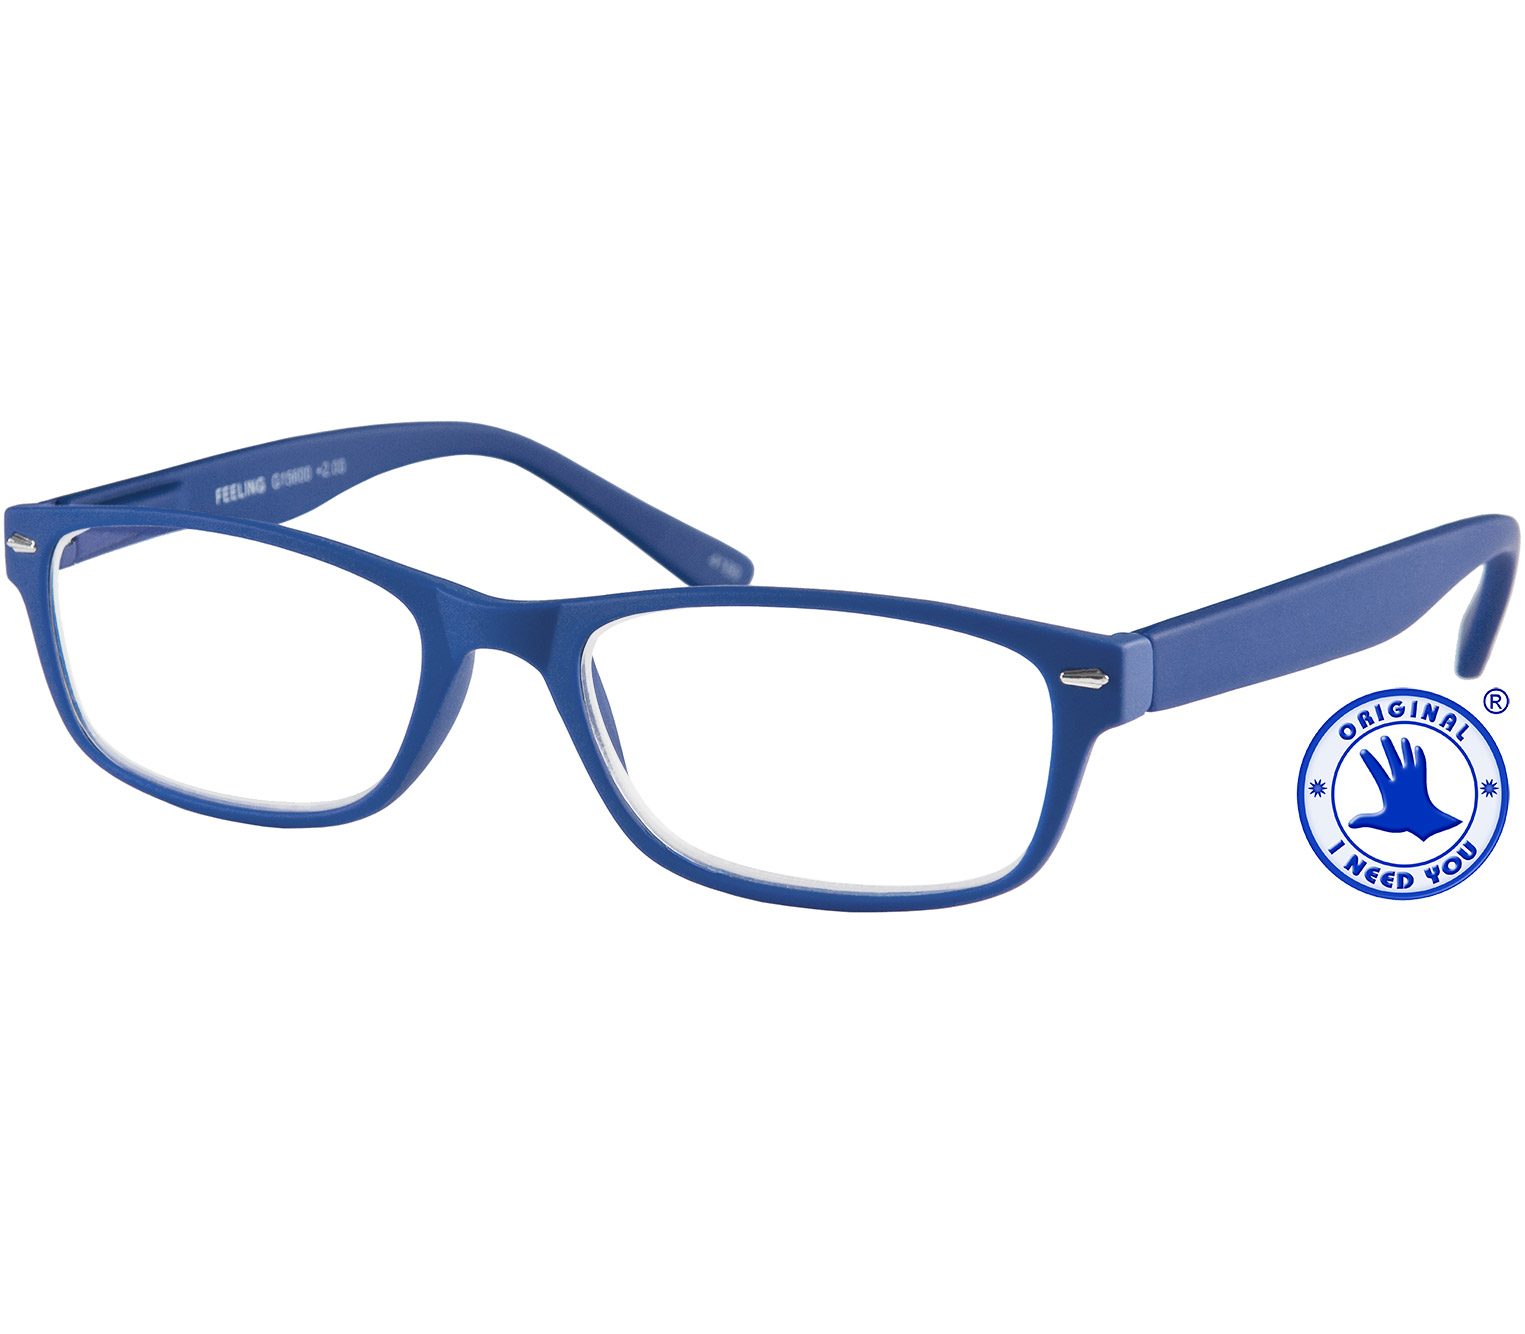 Main Image (Angle) - Feeling (Blue) Classic Reading Glasses